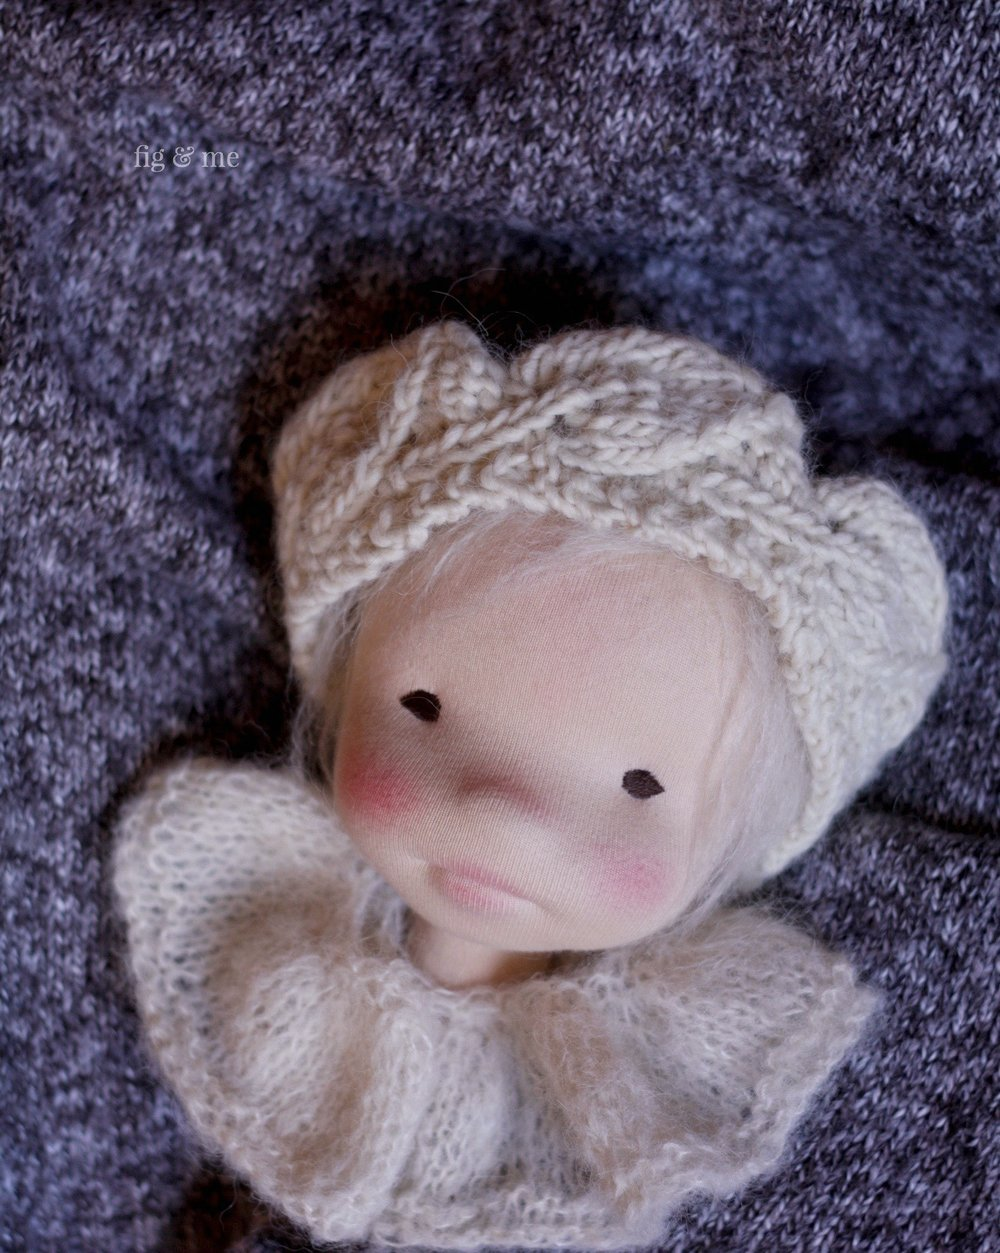 My love. A beautiful (if I say so myself) little wool child in doll form. By Fig and Me.